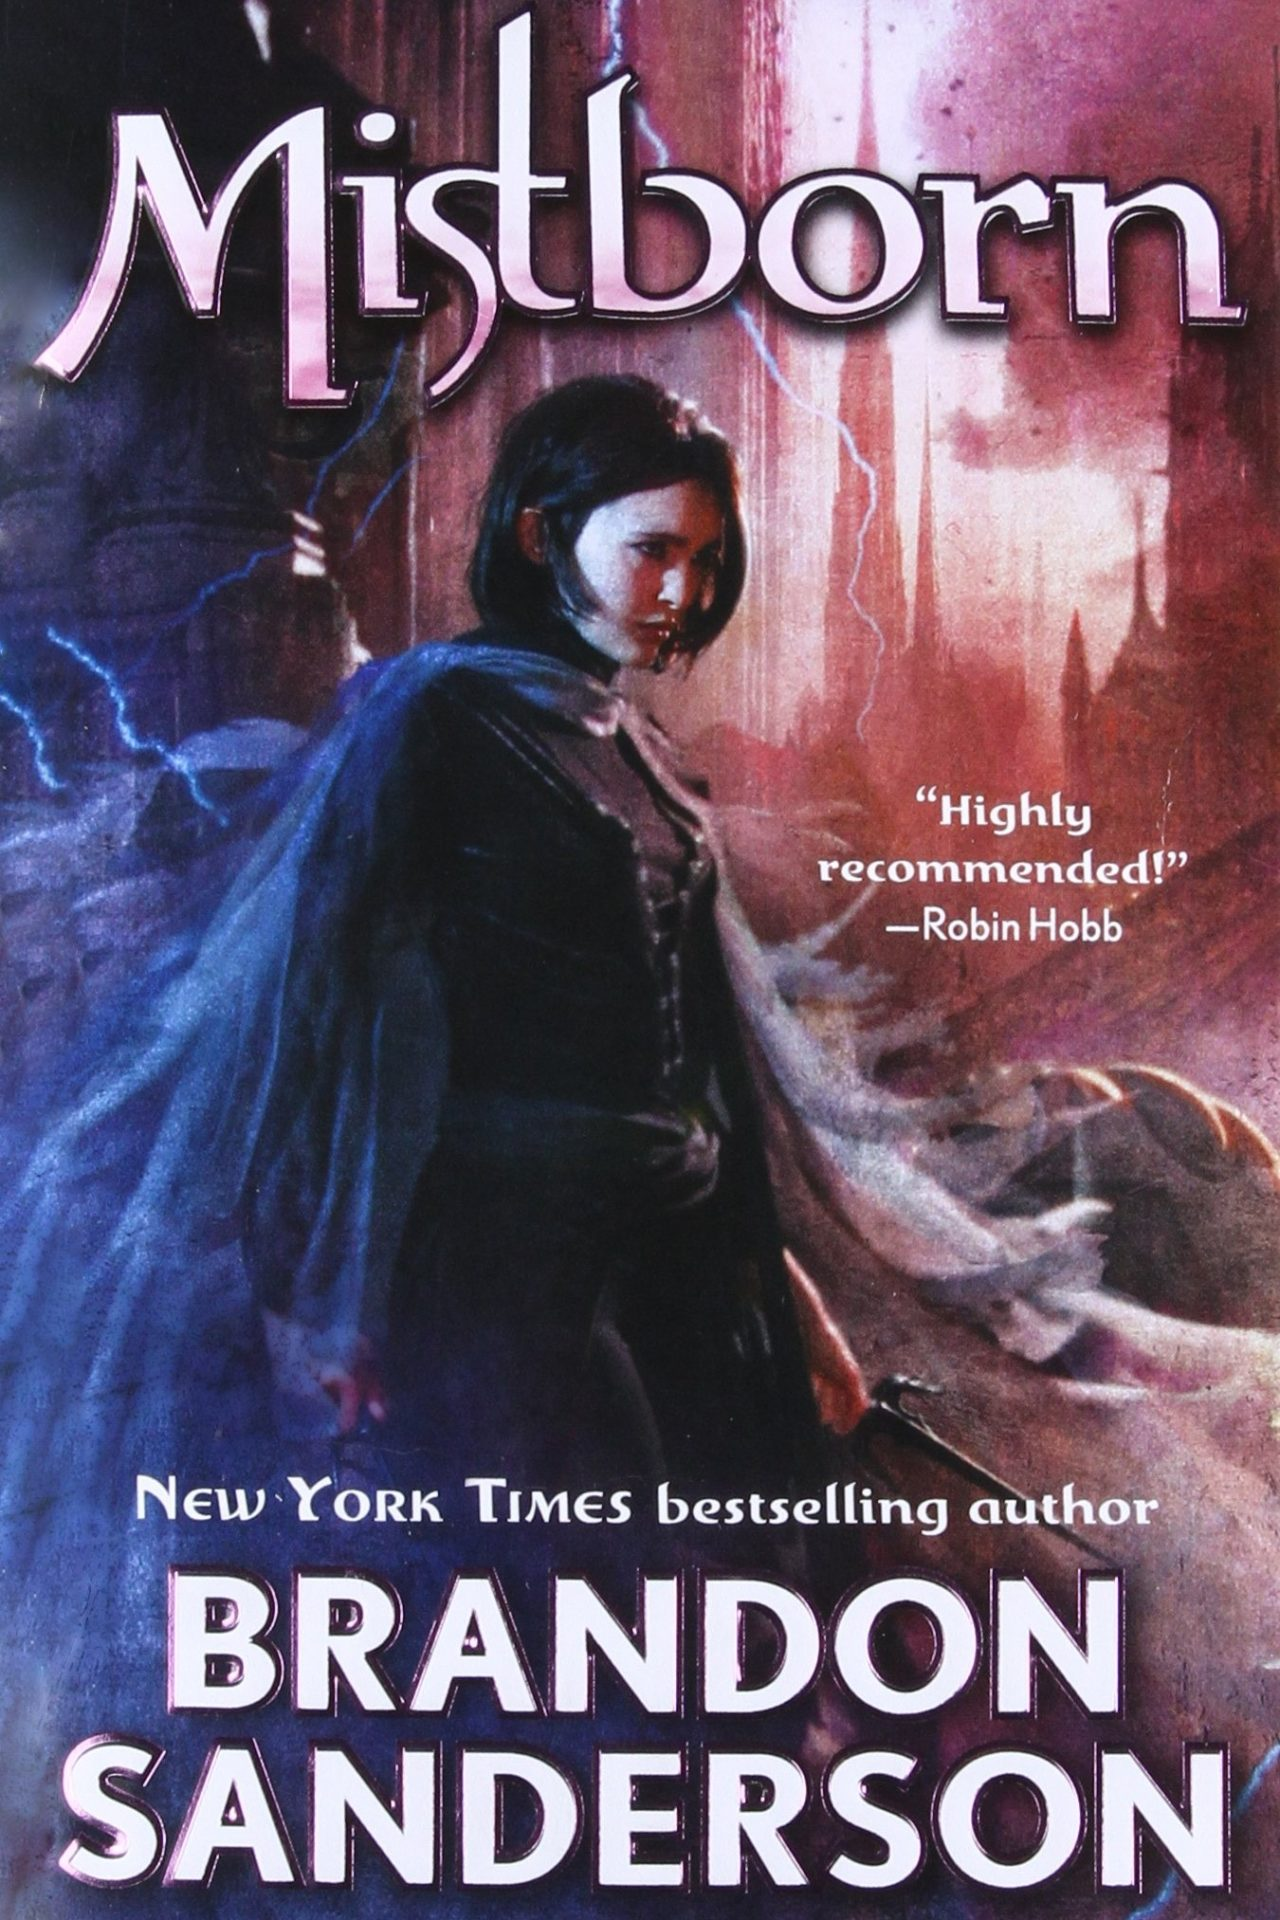 The Final Empire (Mistborn #1) – Brandon Sanderson